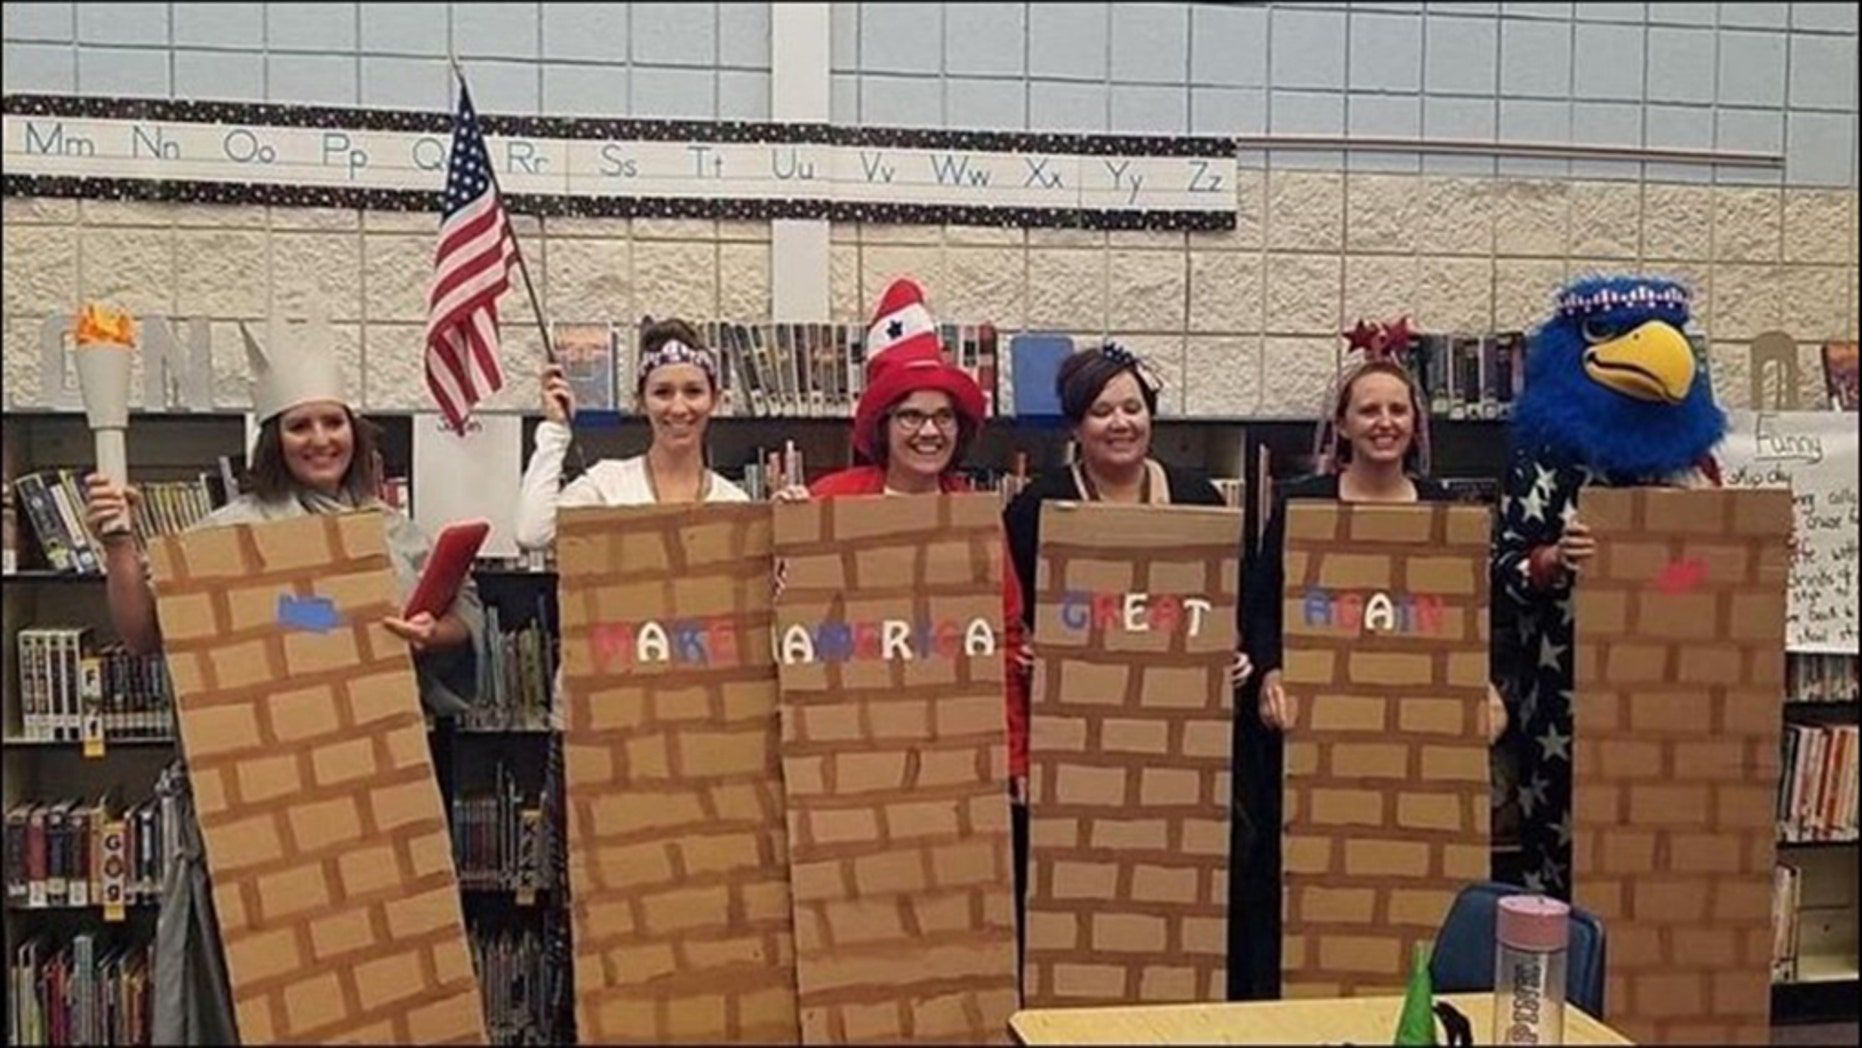 Elementary School Teachers In Idaho Dress As Trump's Border Wall For Halloween